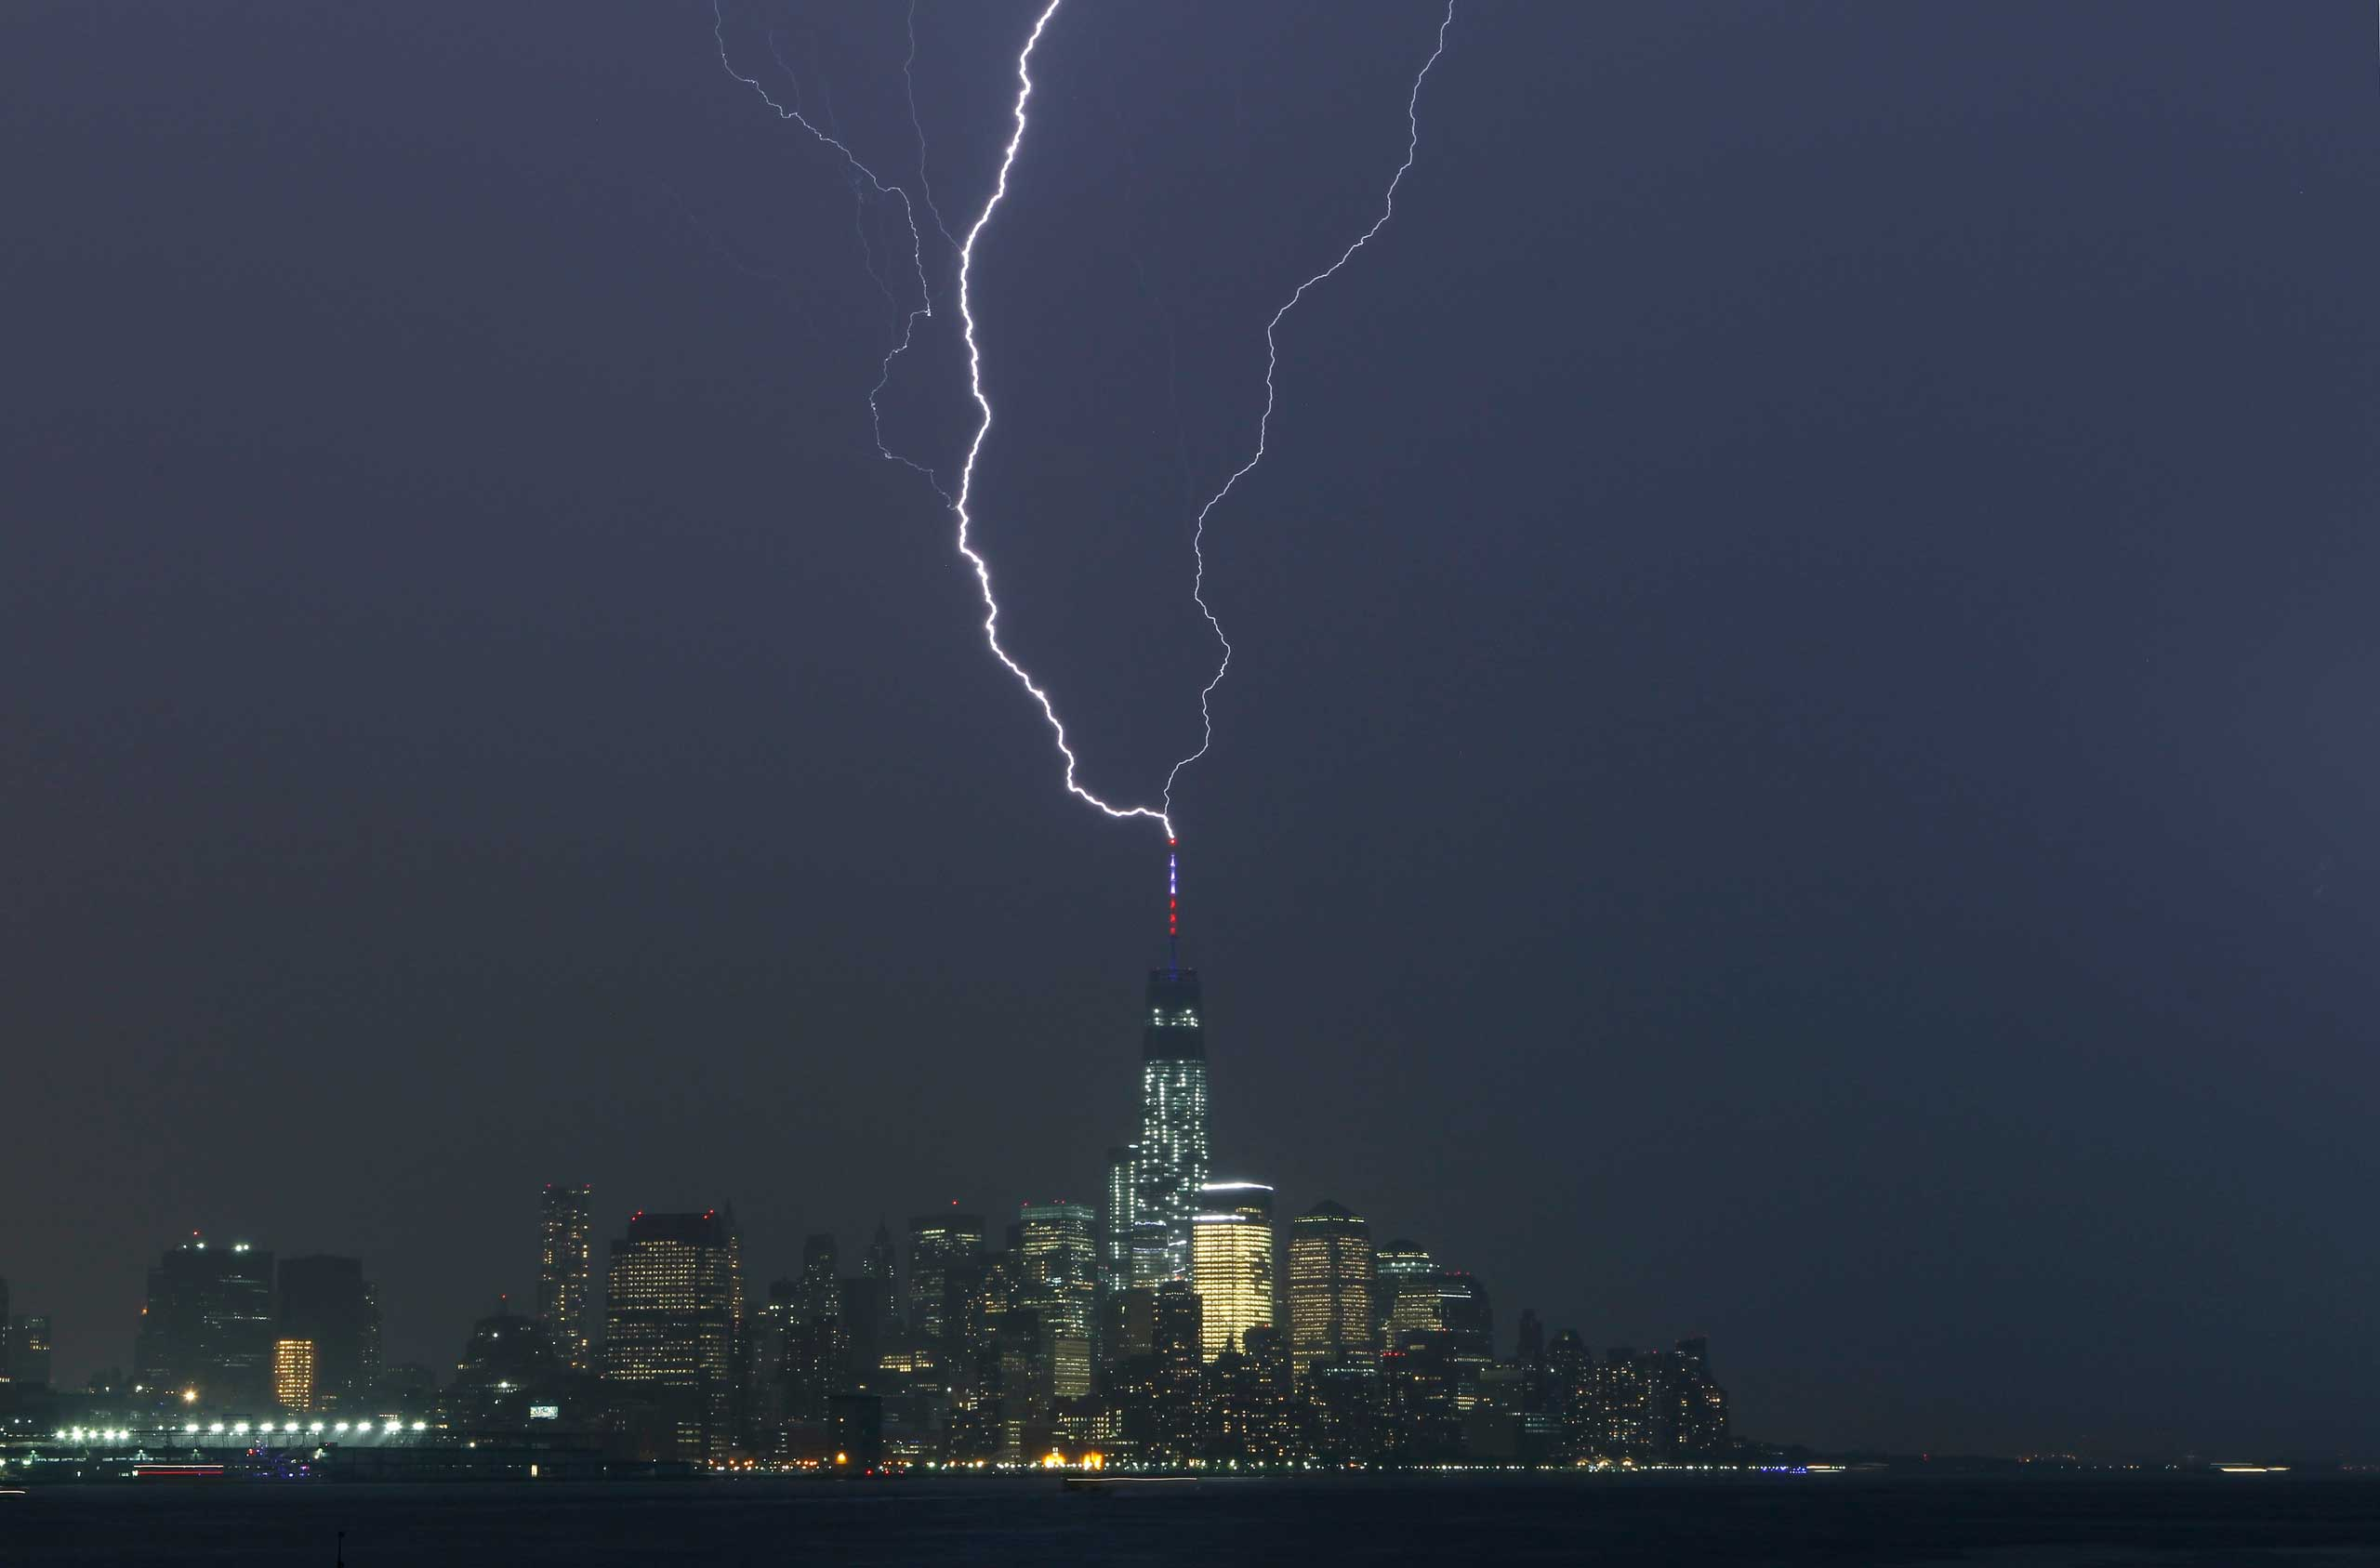 Two bolts of lightning hit the antenna on top of One World Trade Center in Lower Manhattan, New York, May 23, 2014.